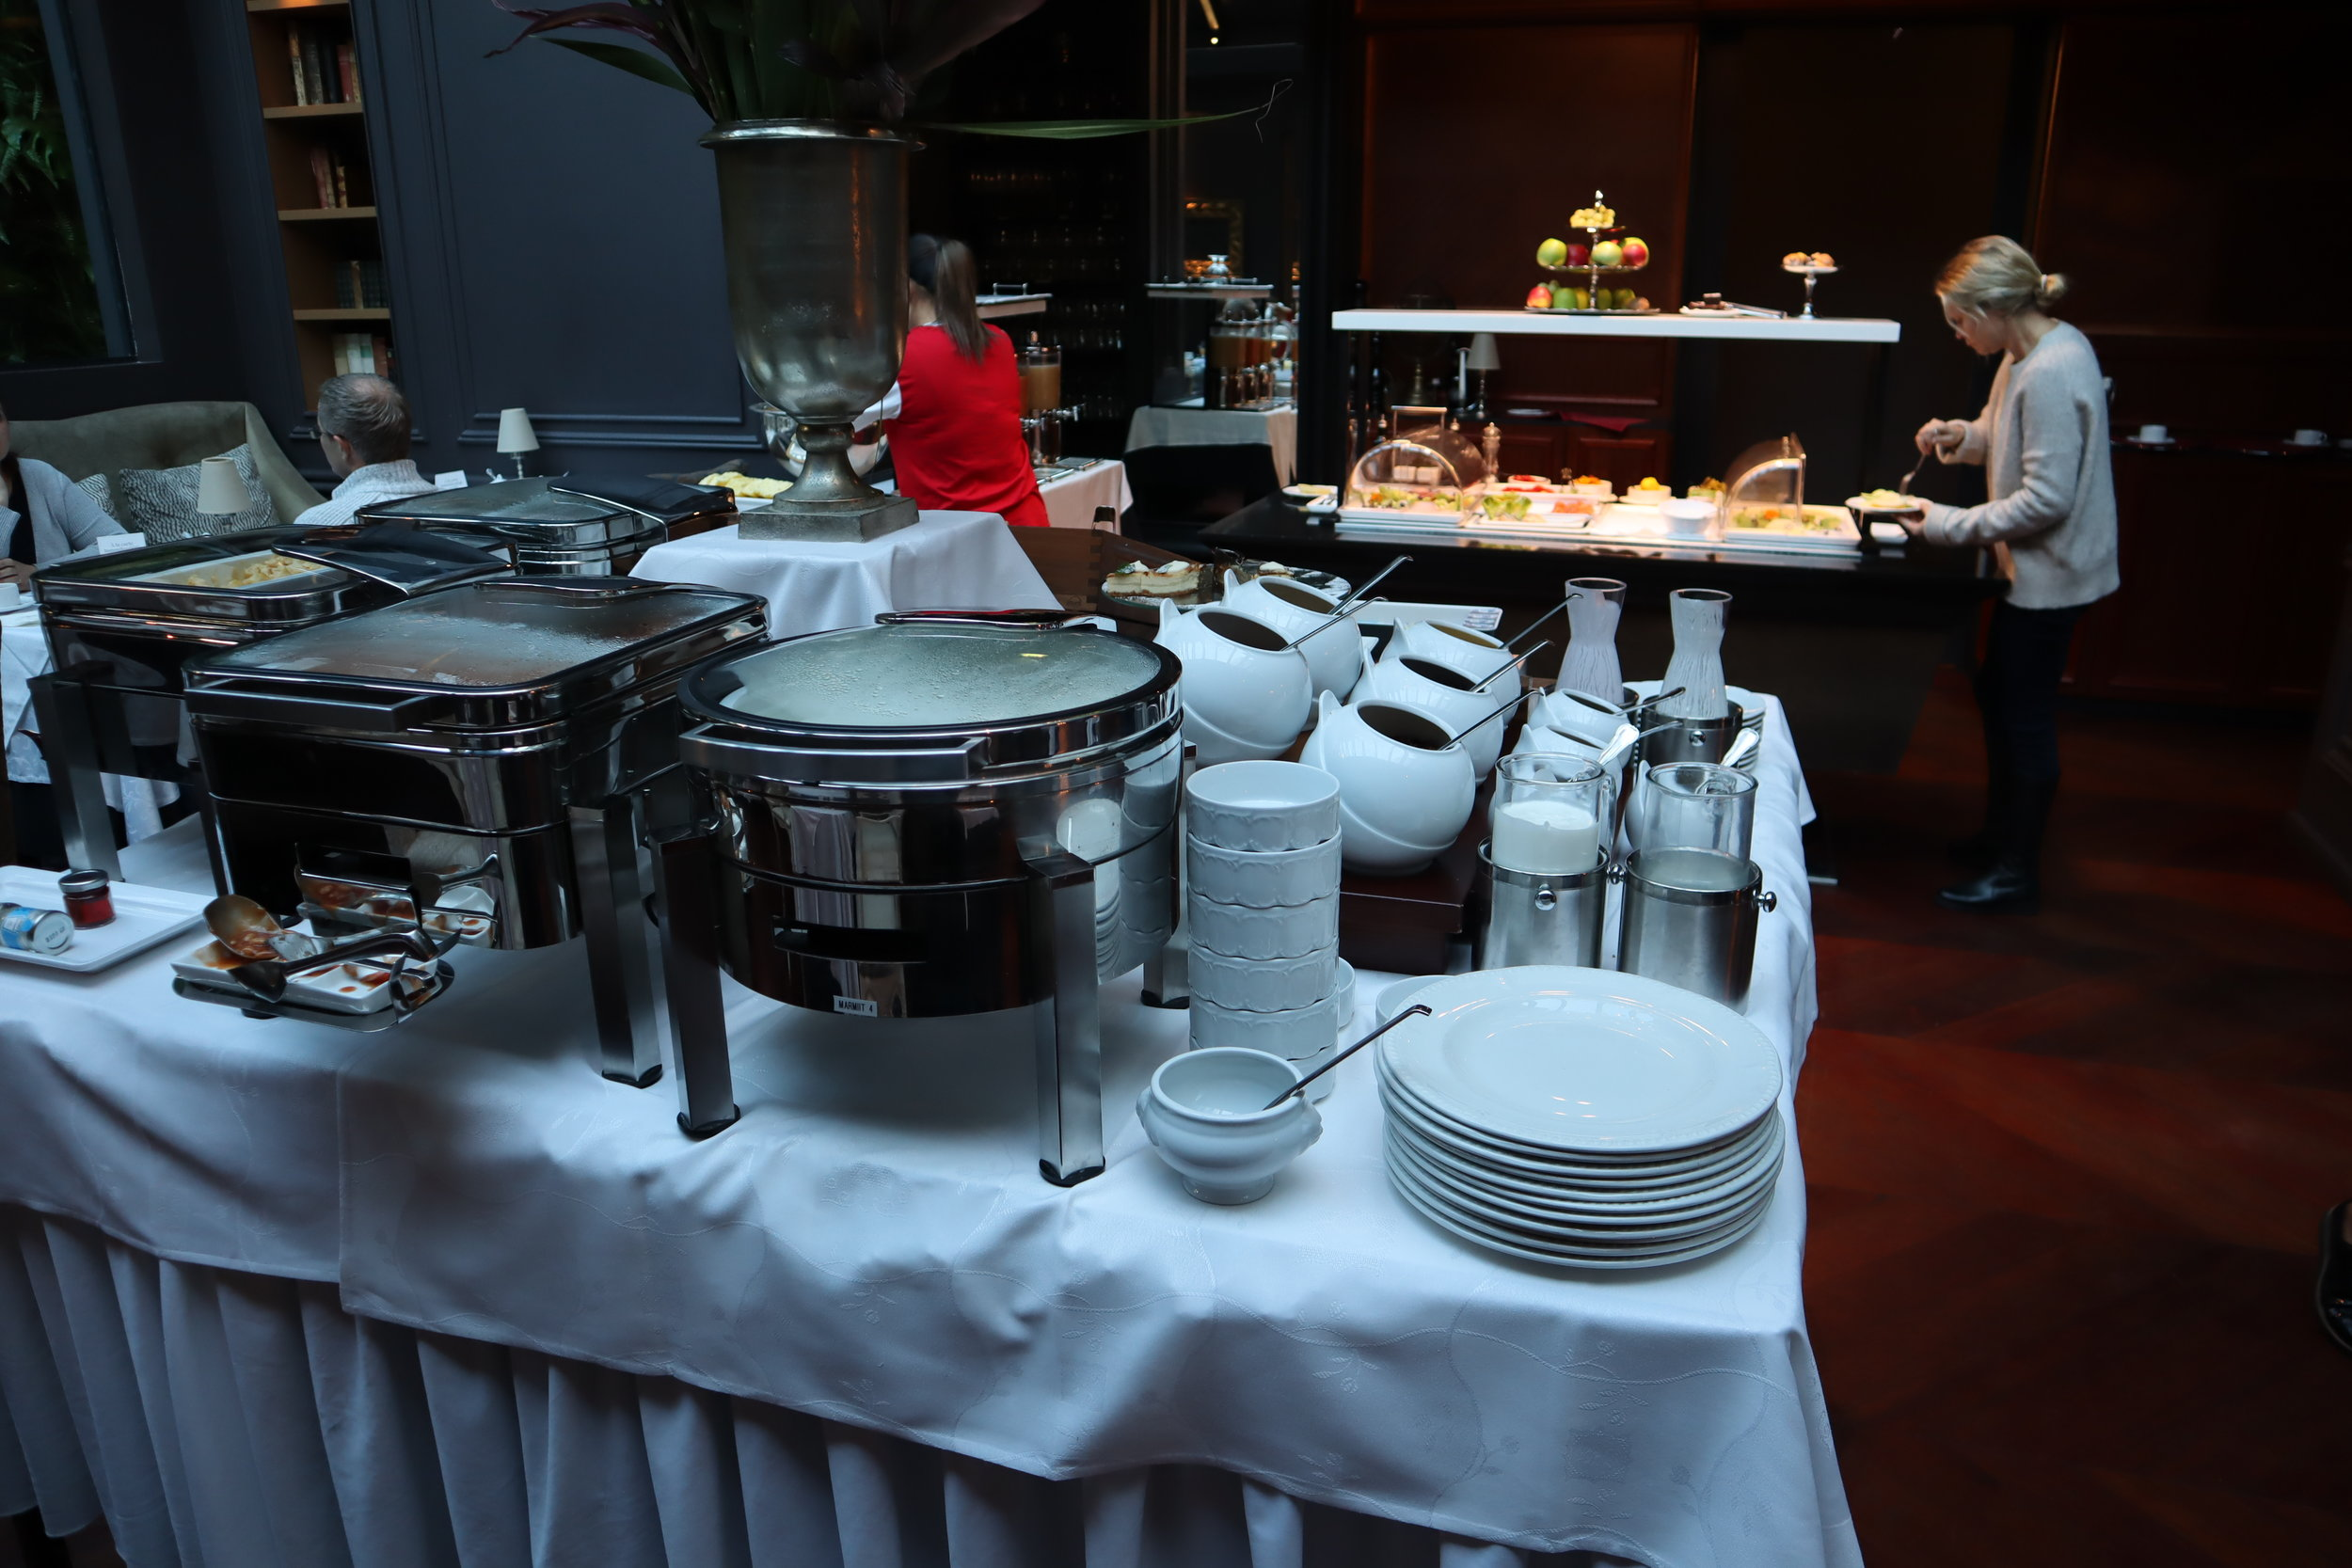 Hotel Telegraaf Tallinn – Breakfast buffet